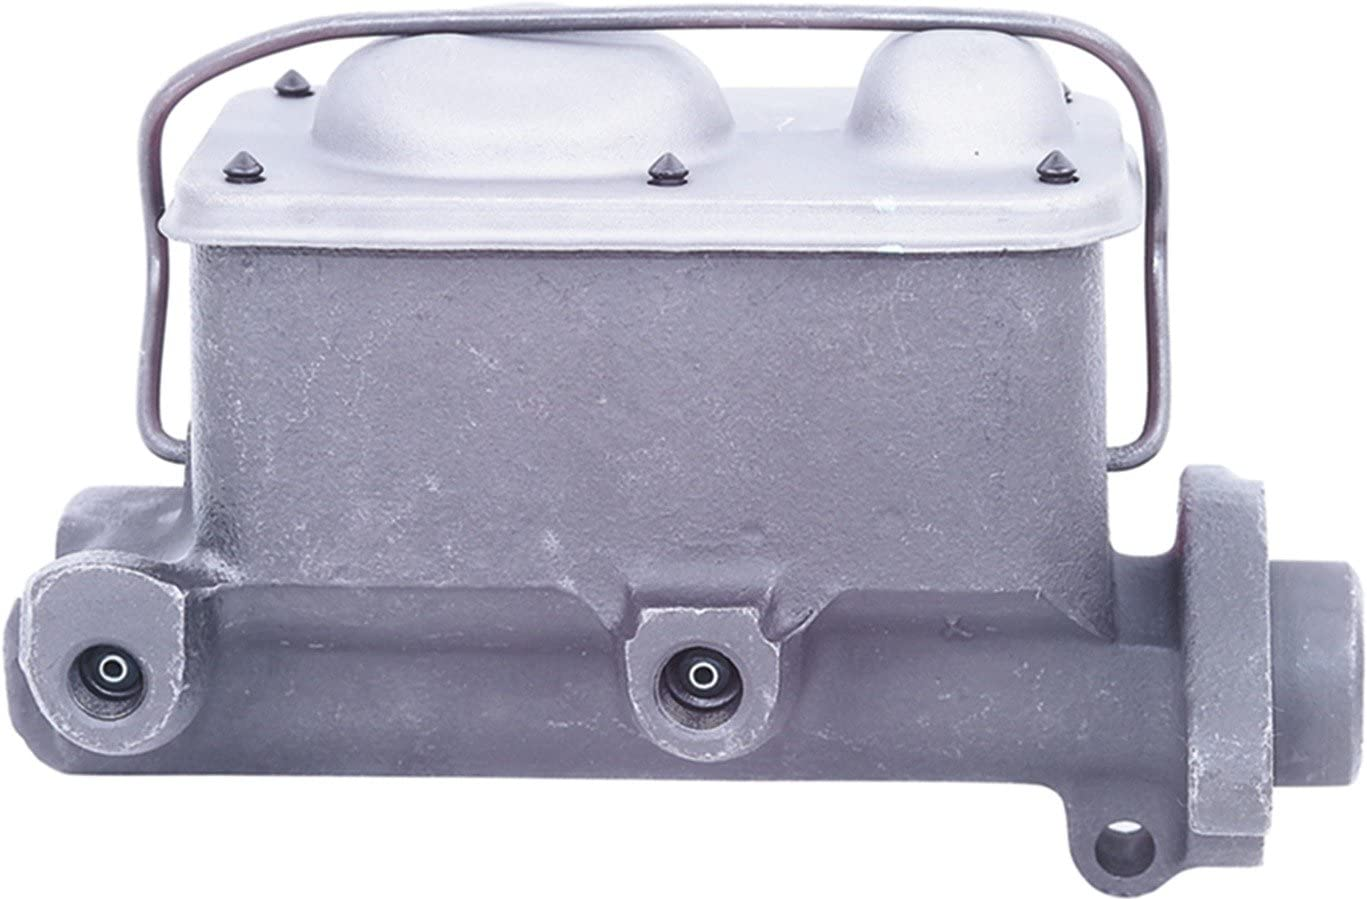 Replaces ACDelco# 18M1878 Wagner# MC101254 One New Brake Master Cylinder